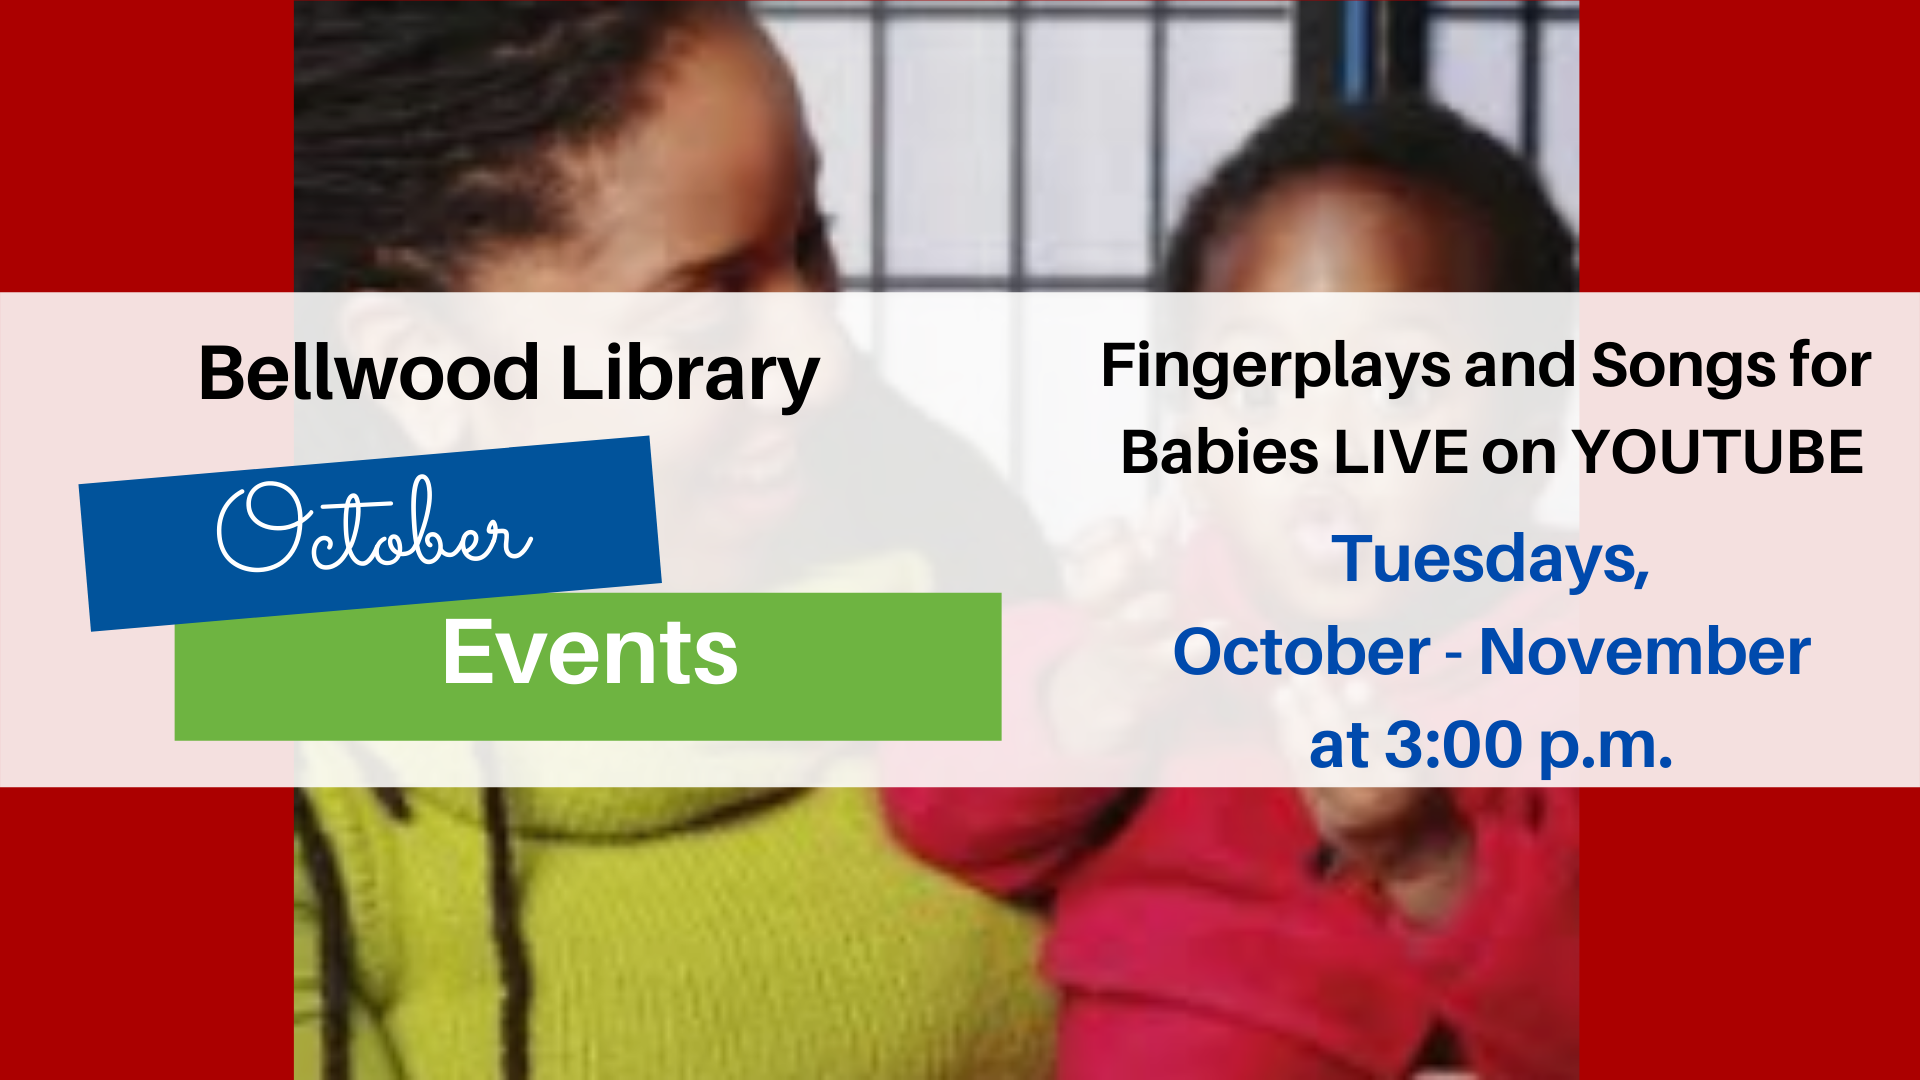 Fingerplays and Songs for Babies LIVE on YOUTUBE